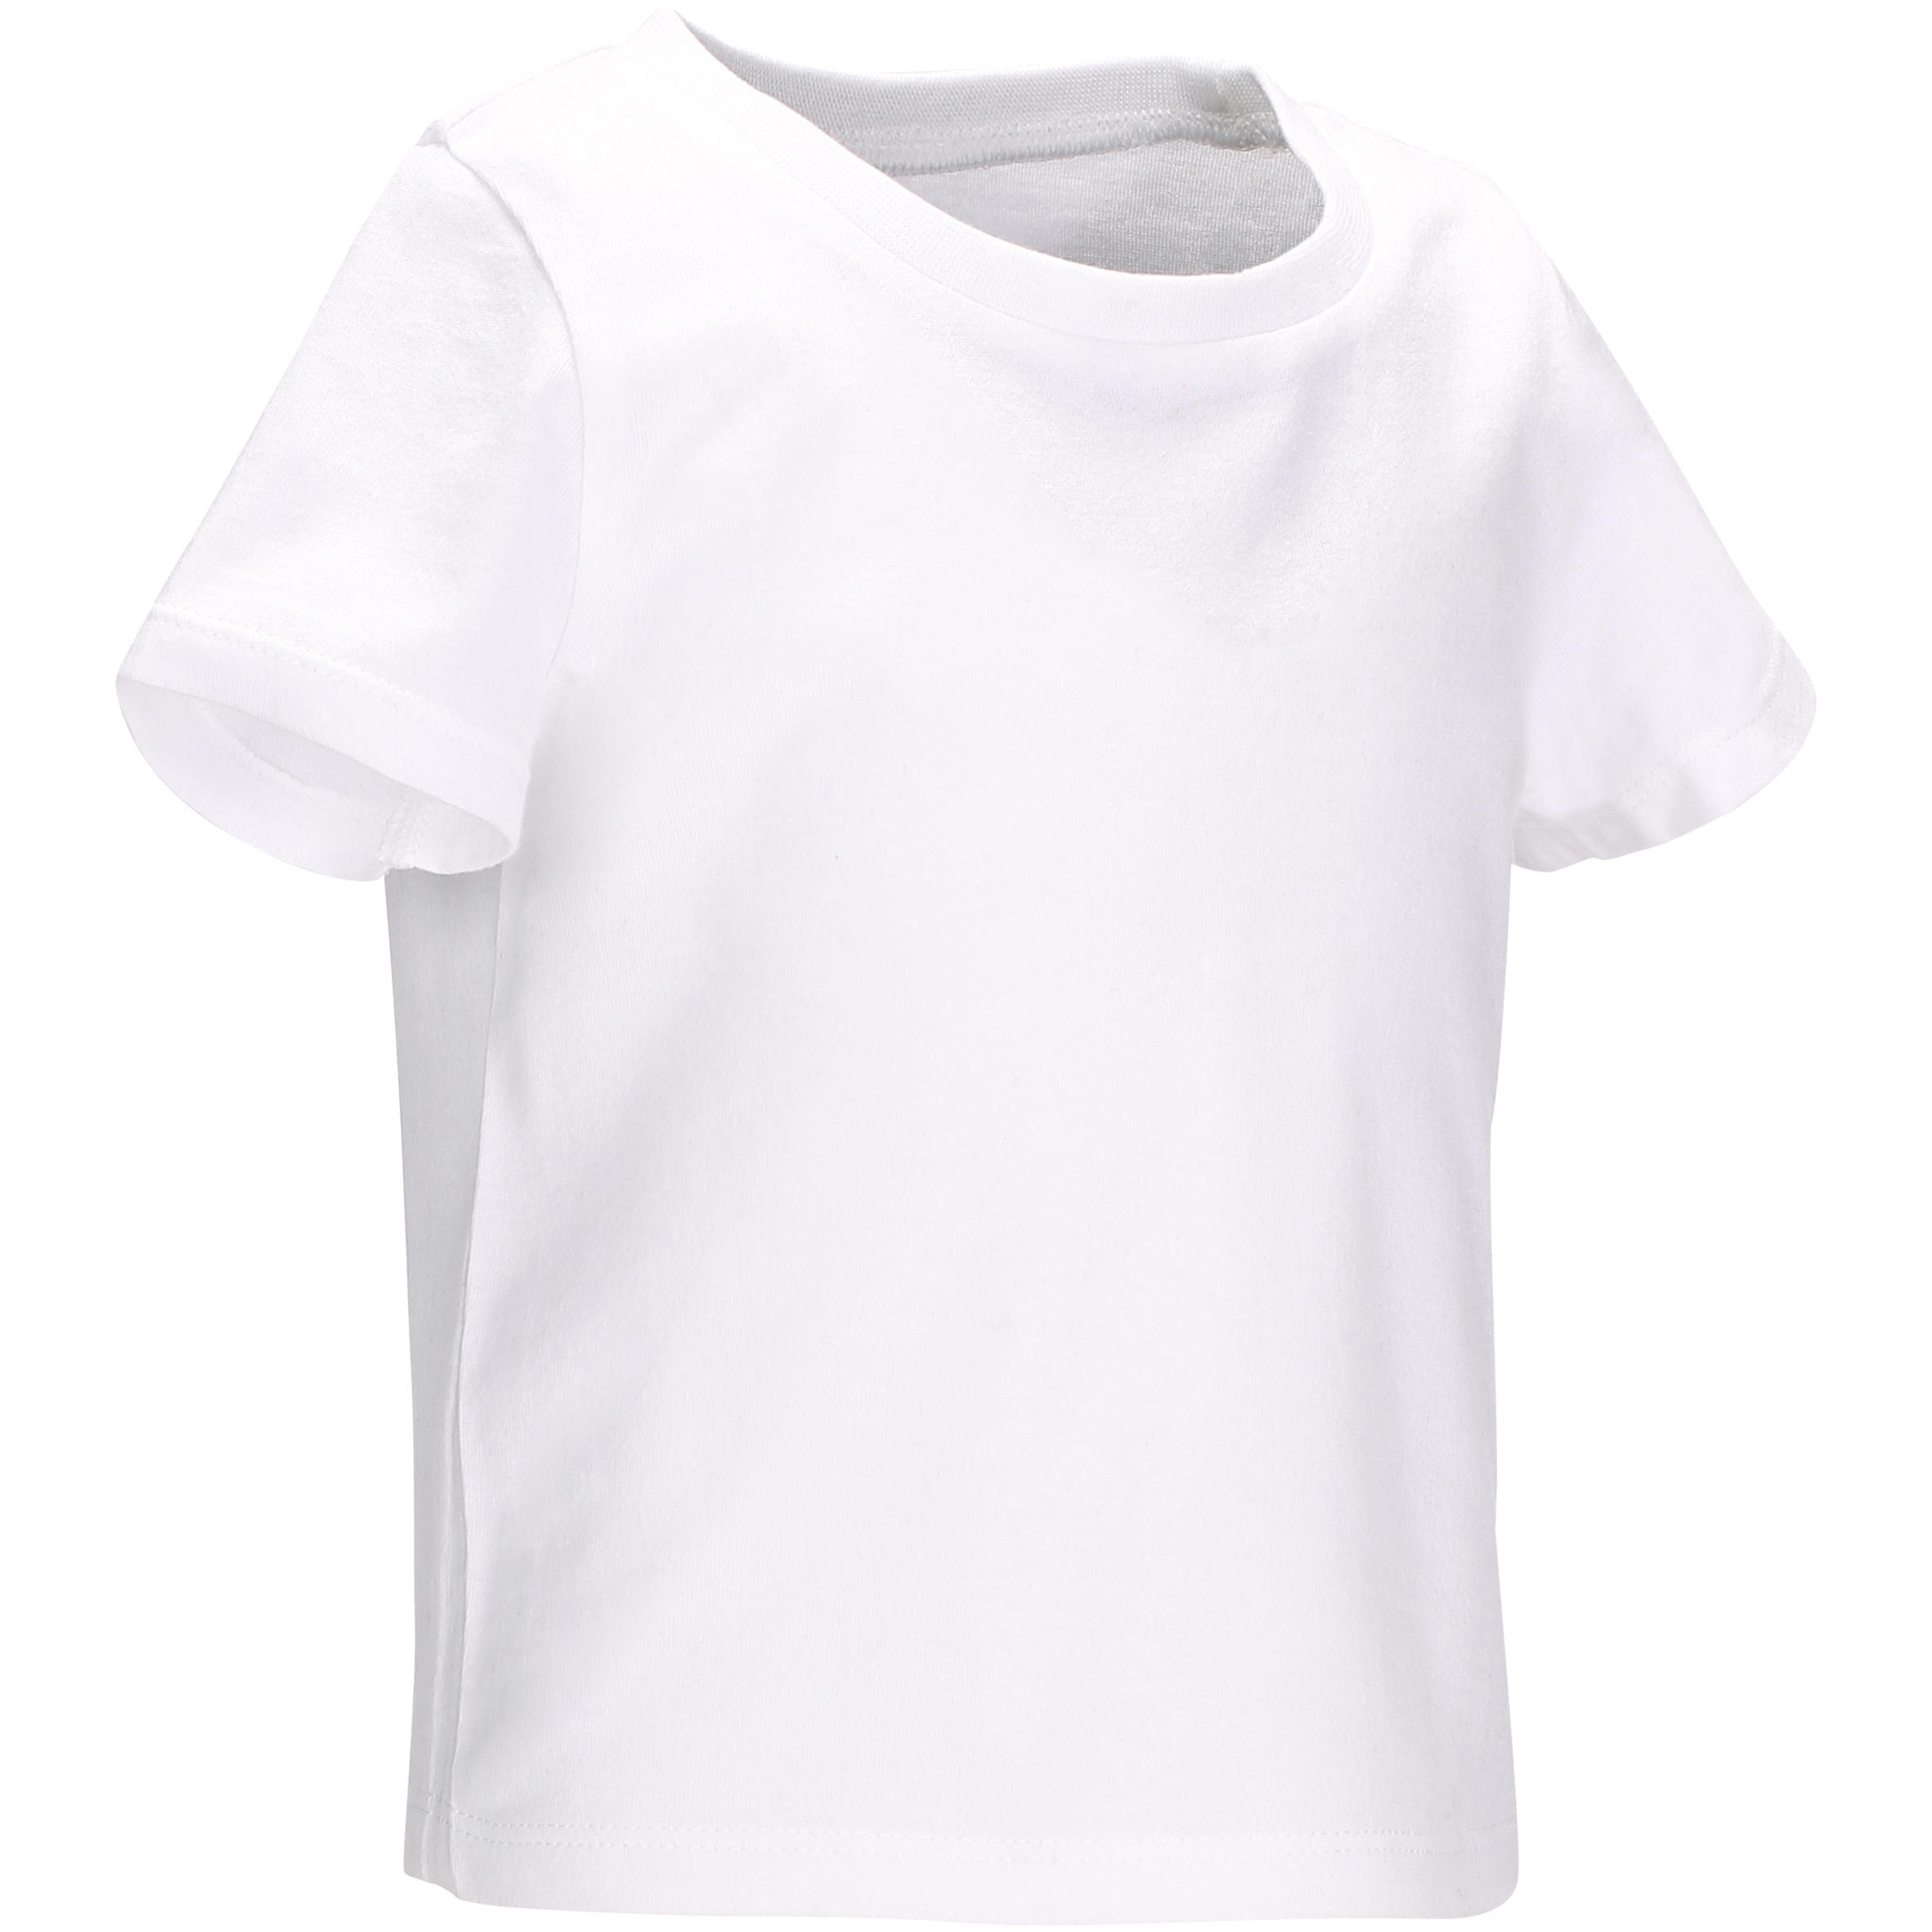 100 Short-Sleeved Baby Gym T-Shirt - White